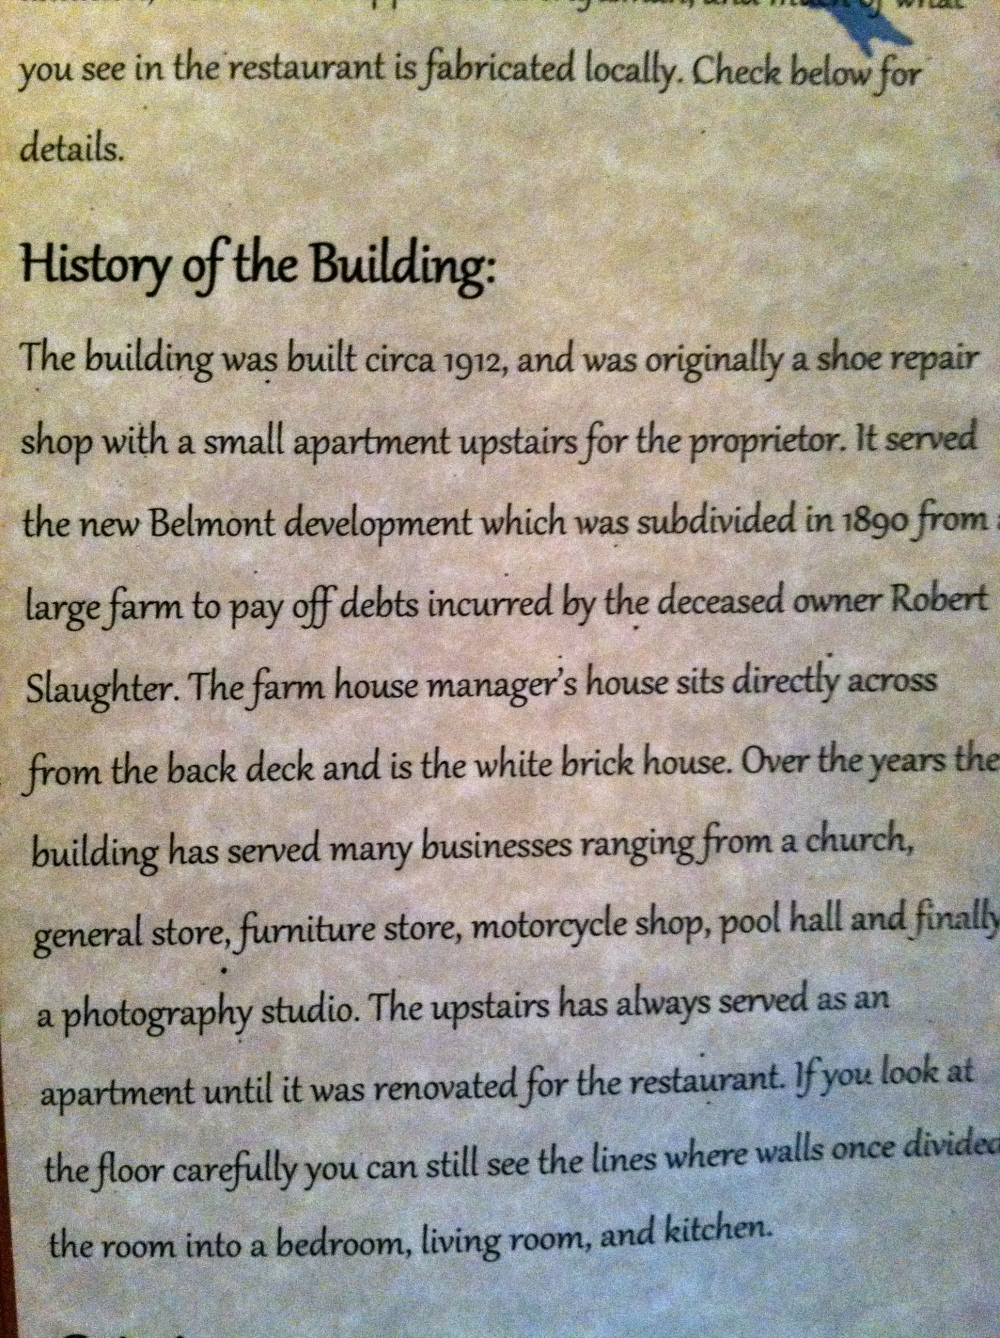 The Local History